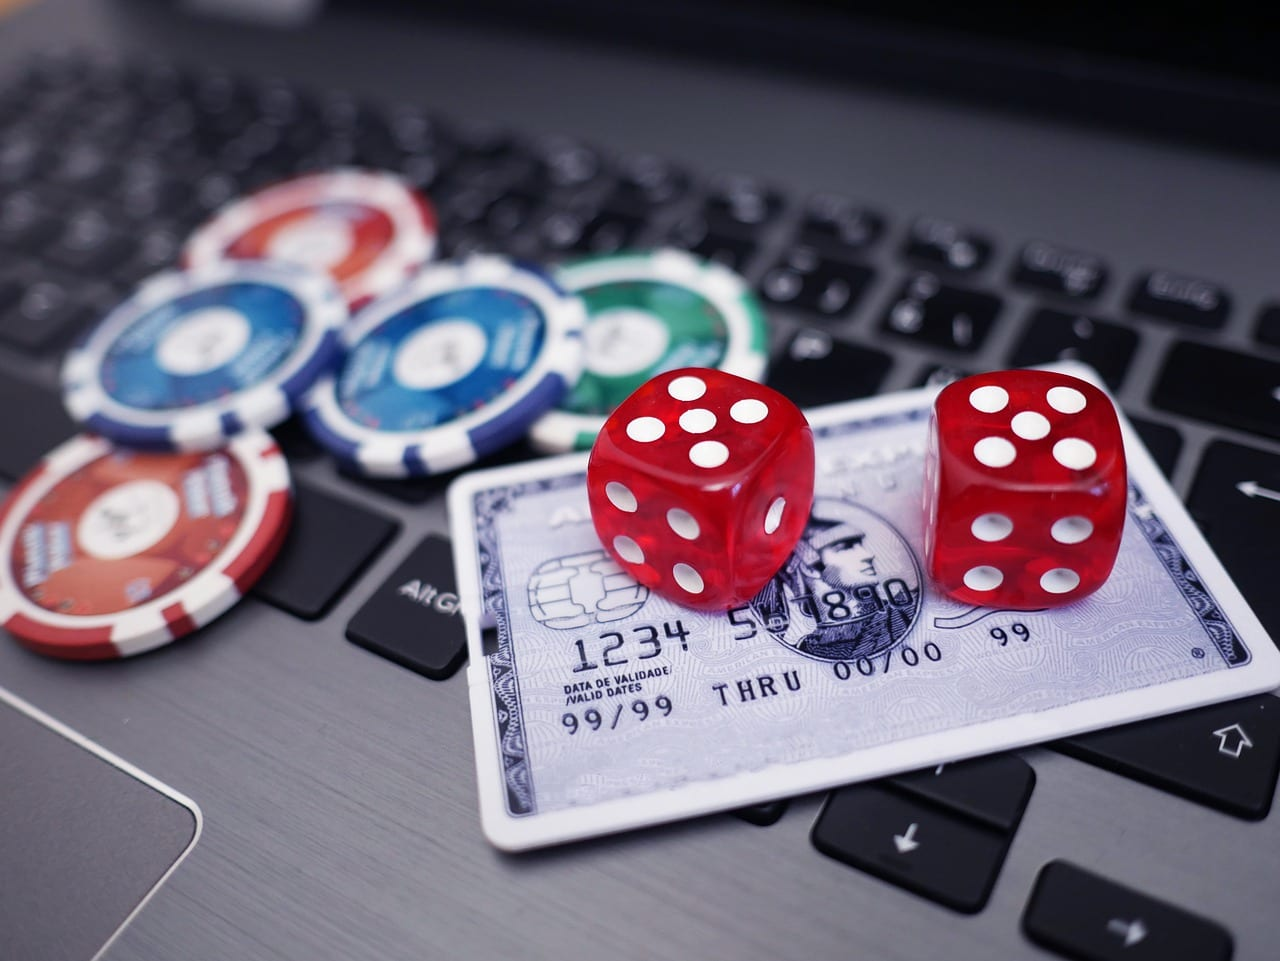 How People Try to Cheat in Casinos · BUSINESSFIRST